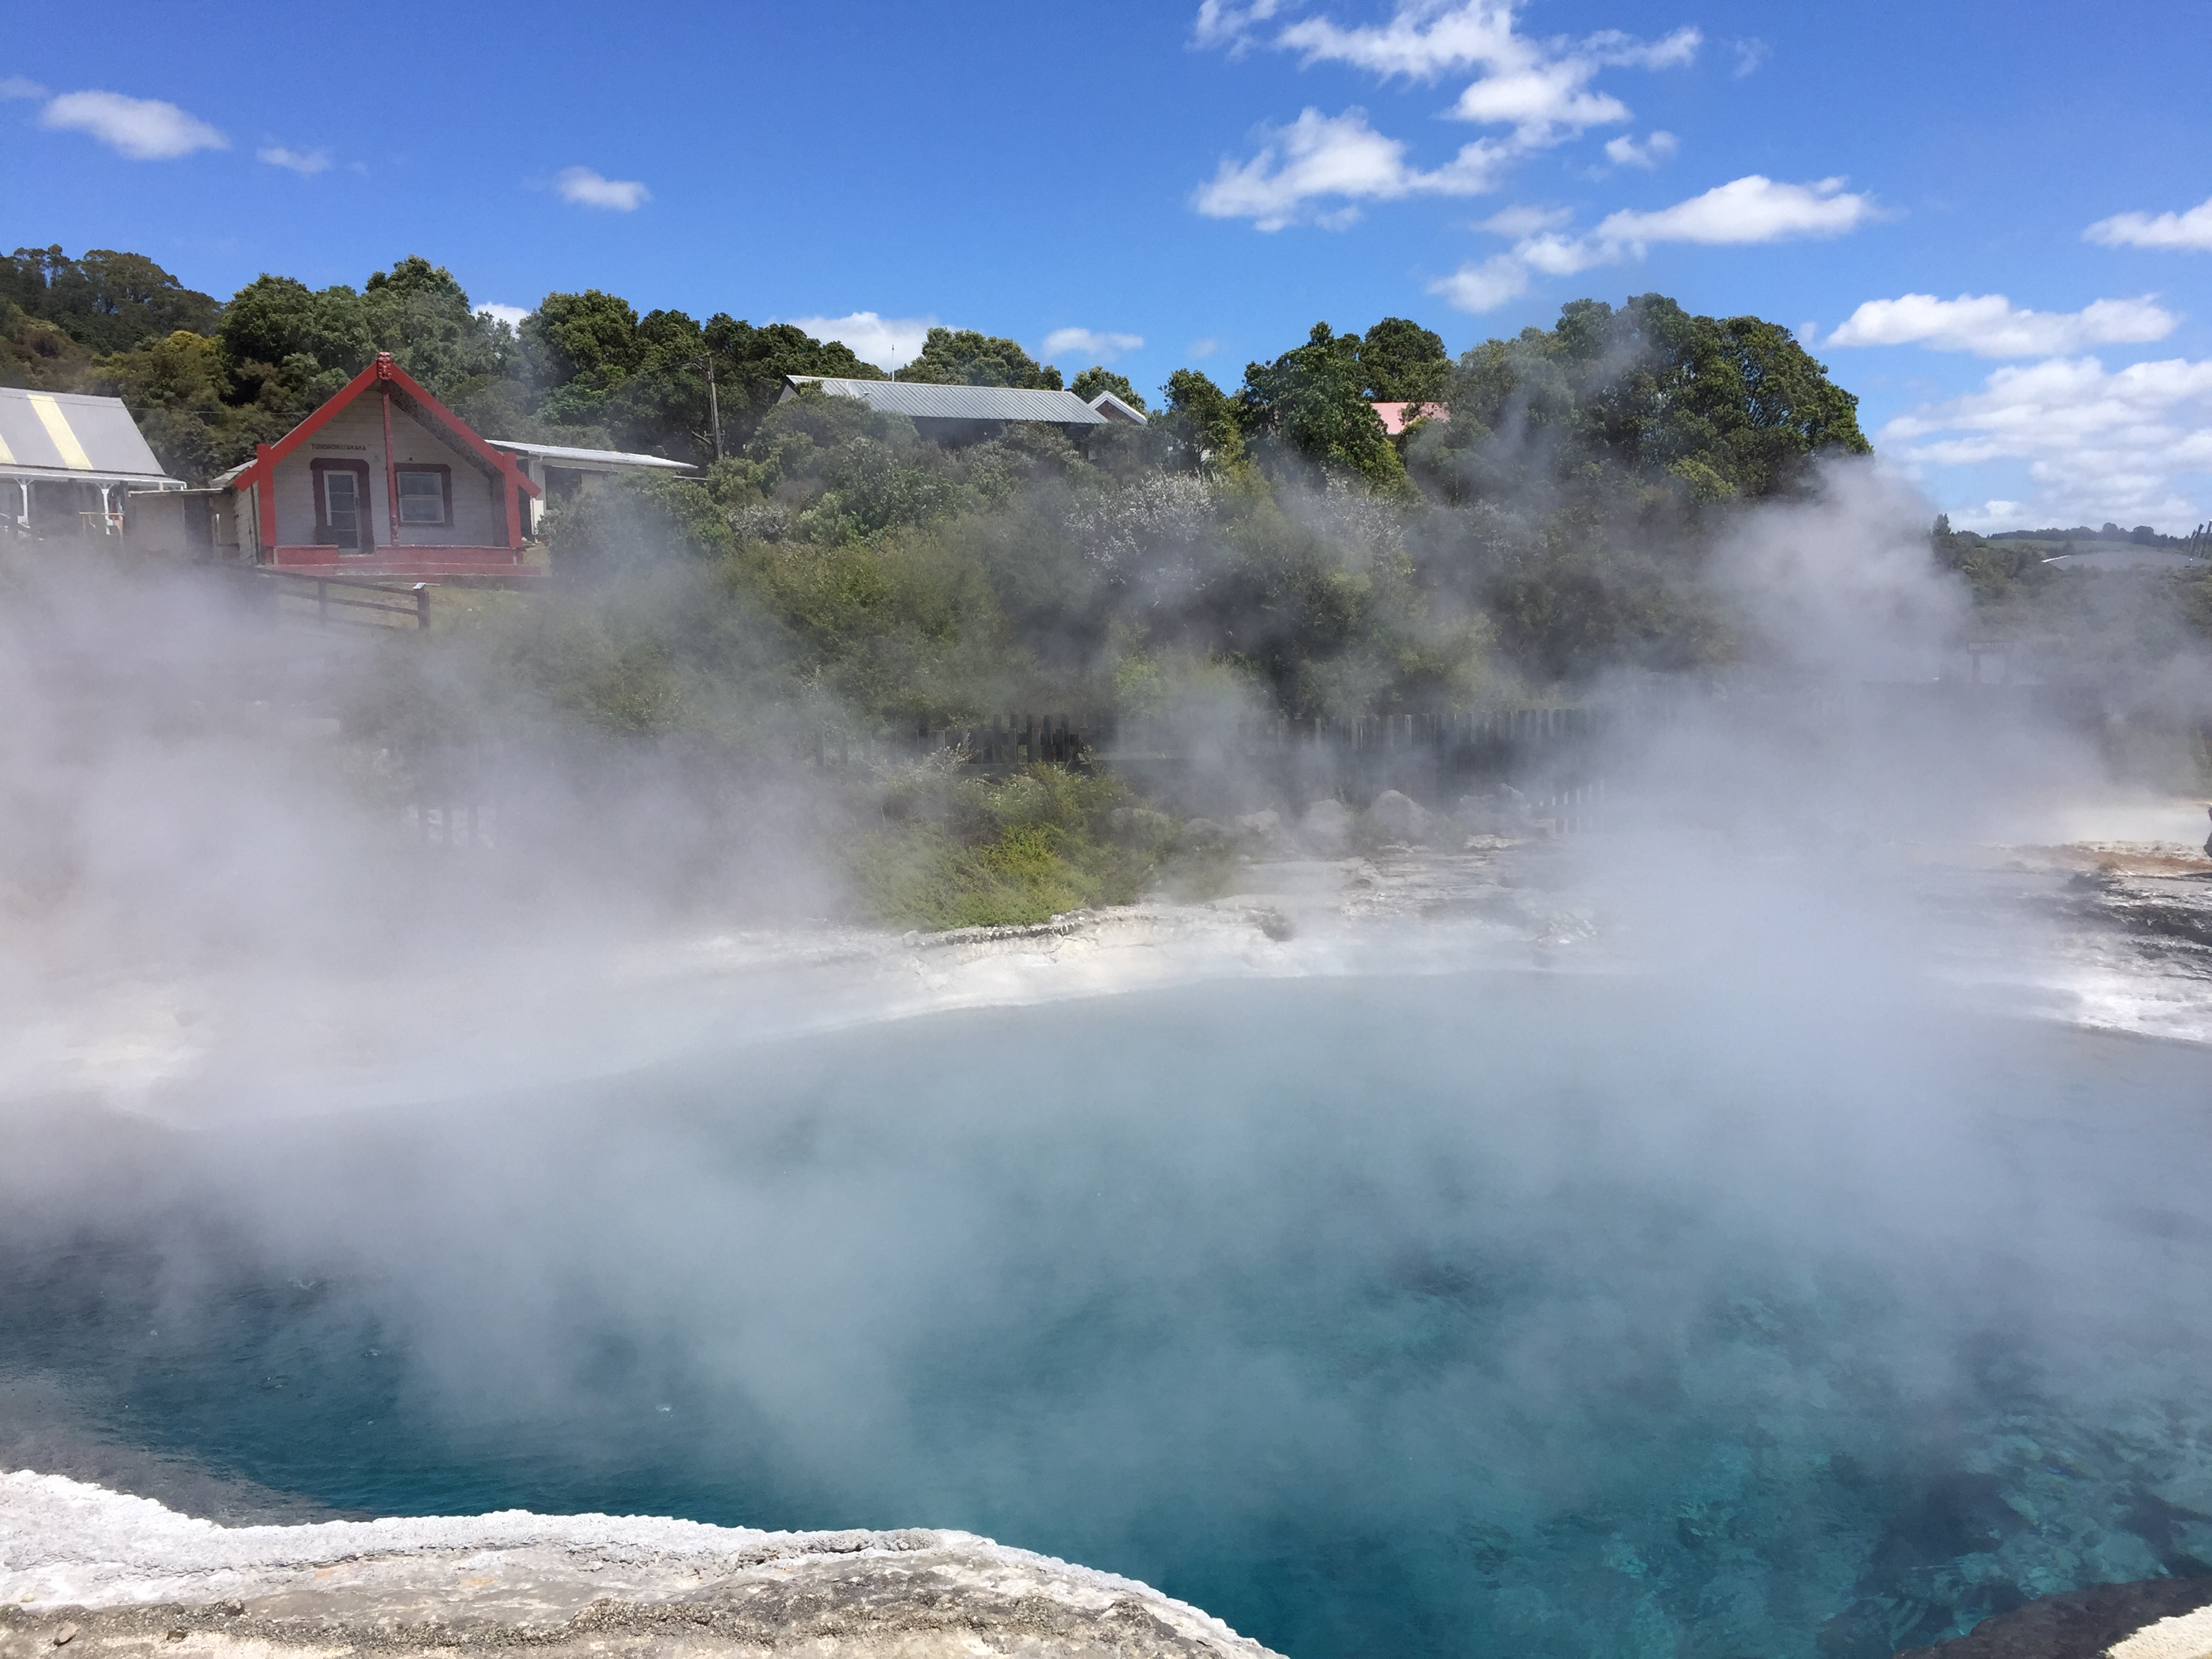 Rotorua Whakarewareawa NZ top destination hot springs steam over blue water in front of red house